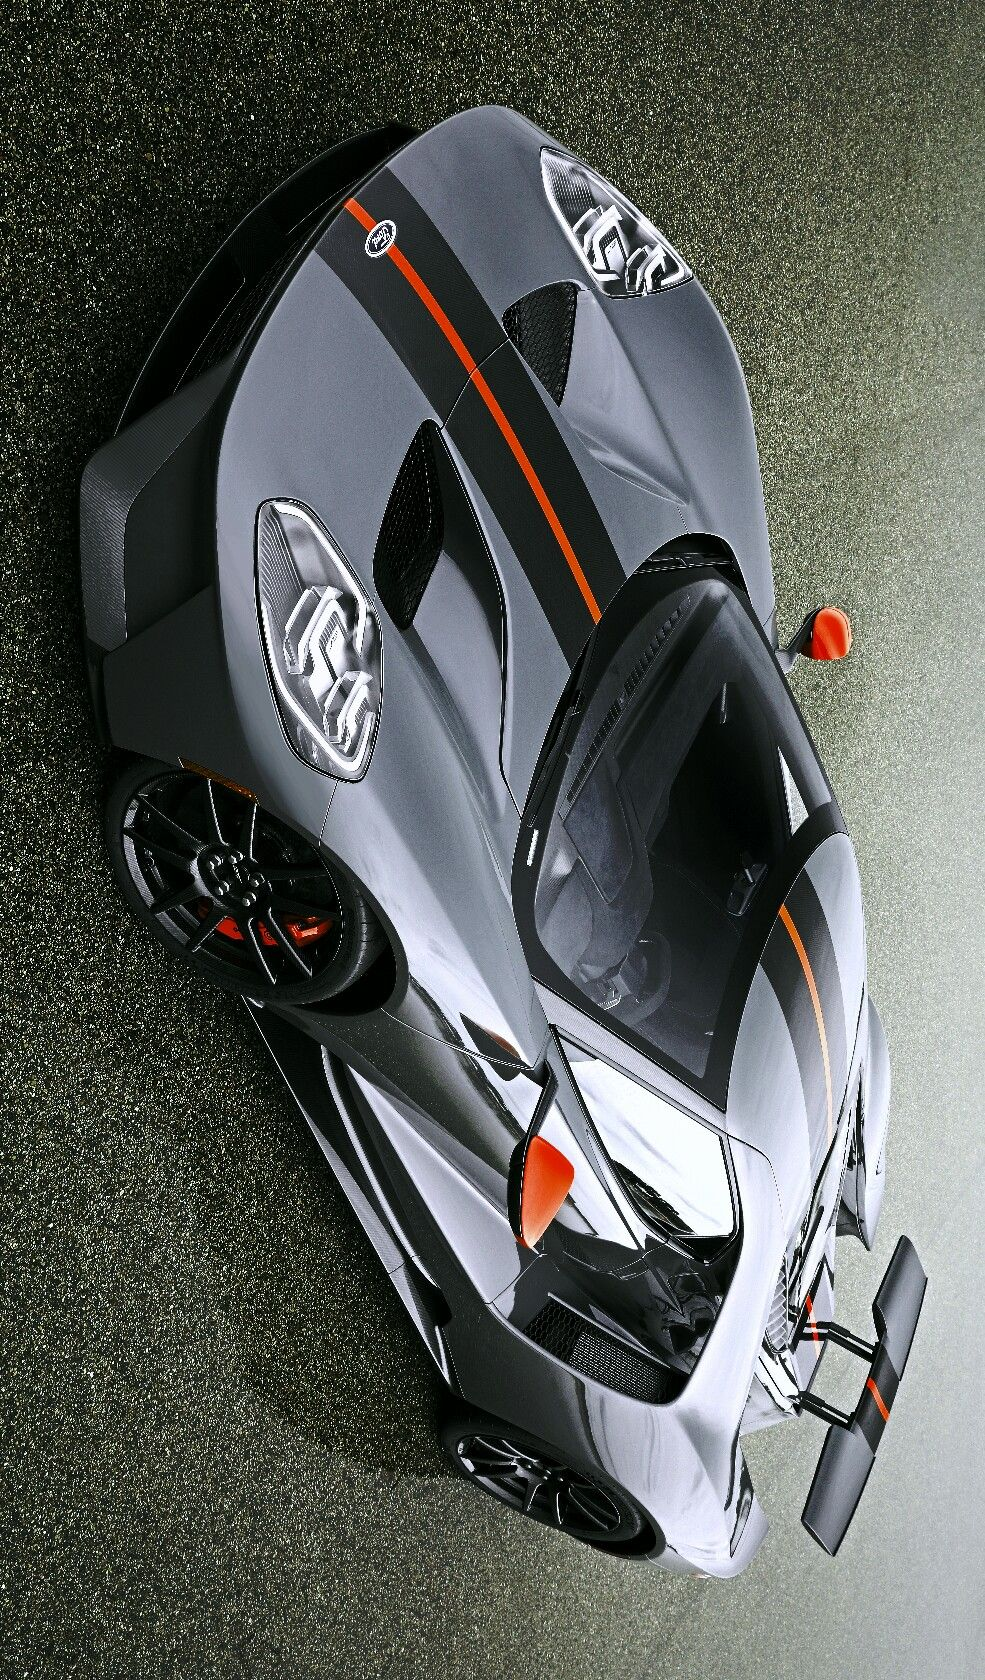 2019 Ford Gt Carbon Series Image Is Provided And Enhanced By